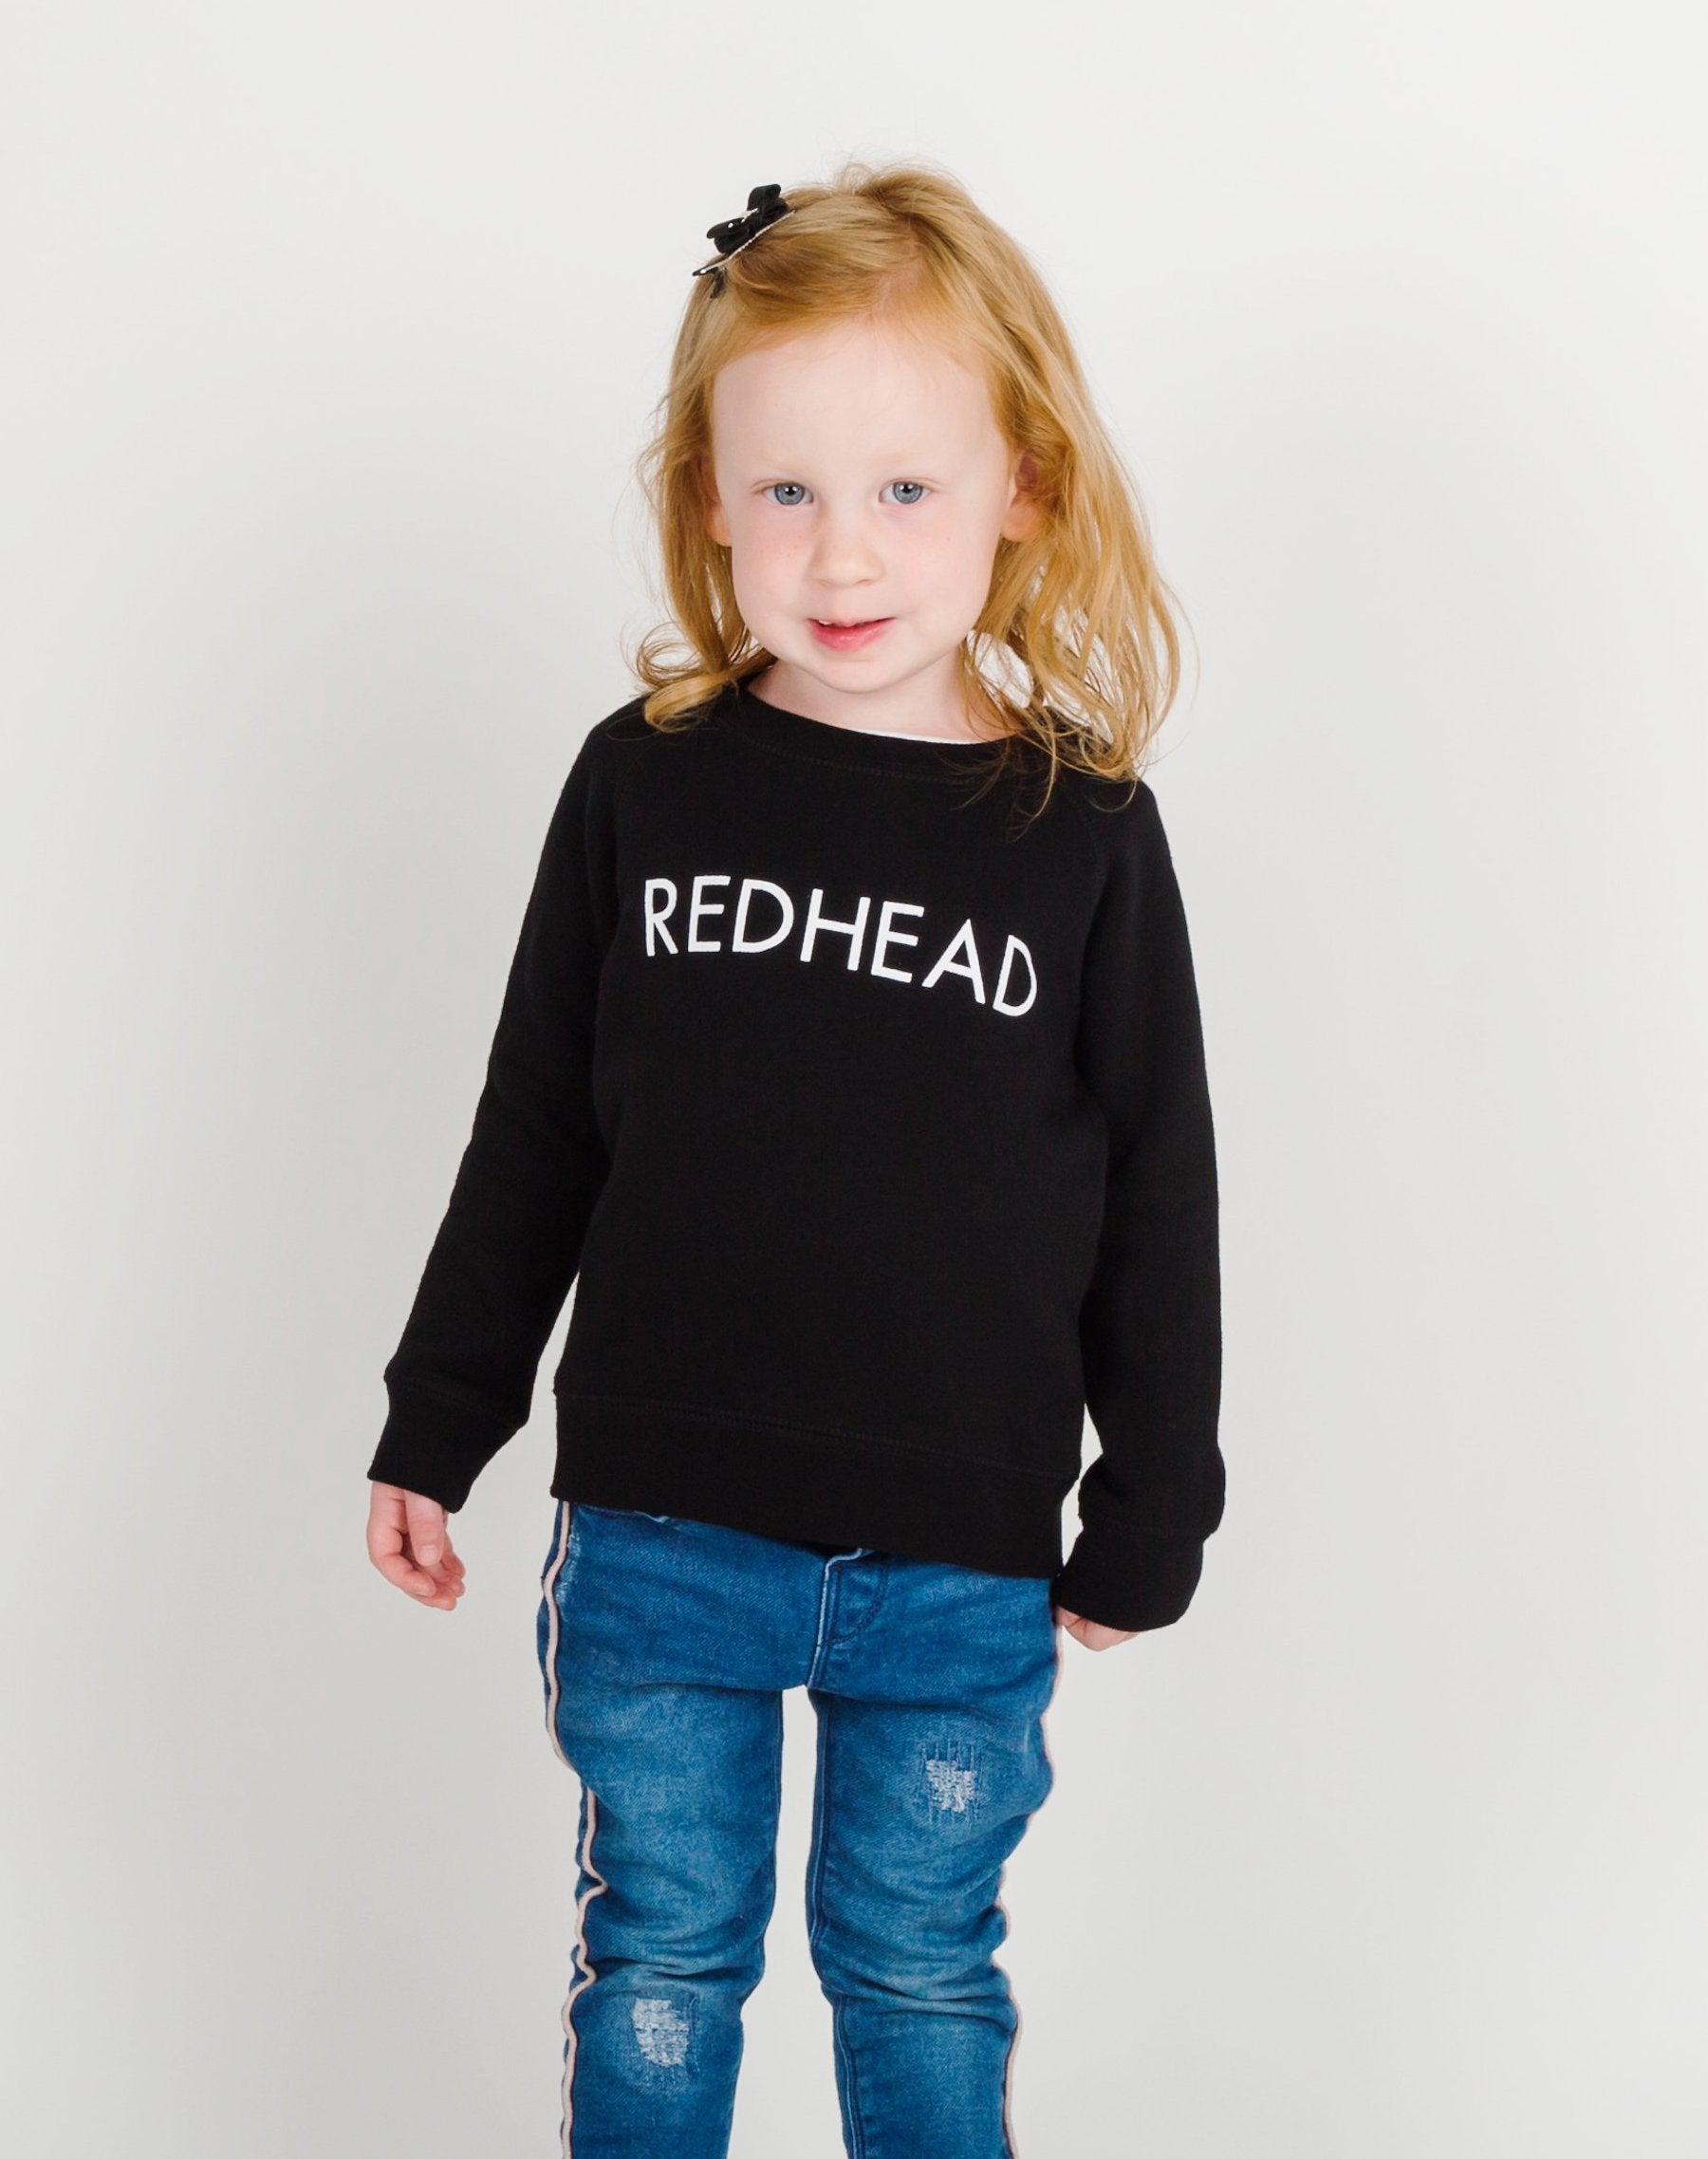 Photo of the Redhead Little Babes classic crew neck sweatshirt in black by Brunette the Label.